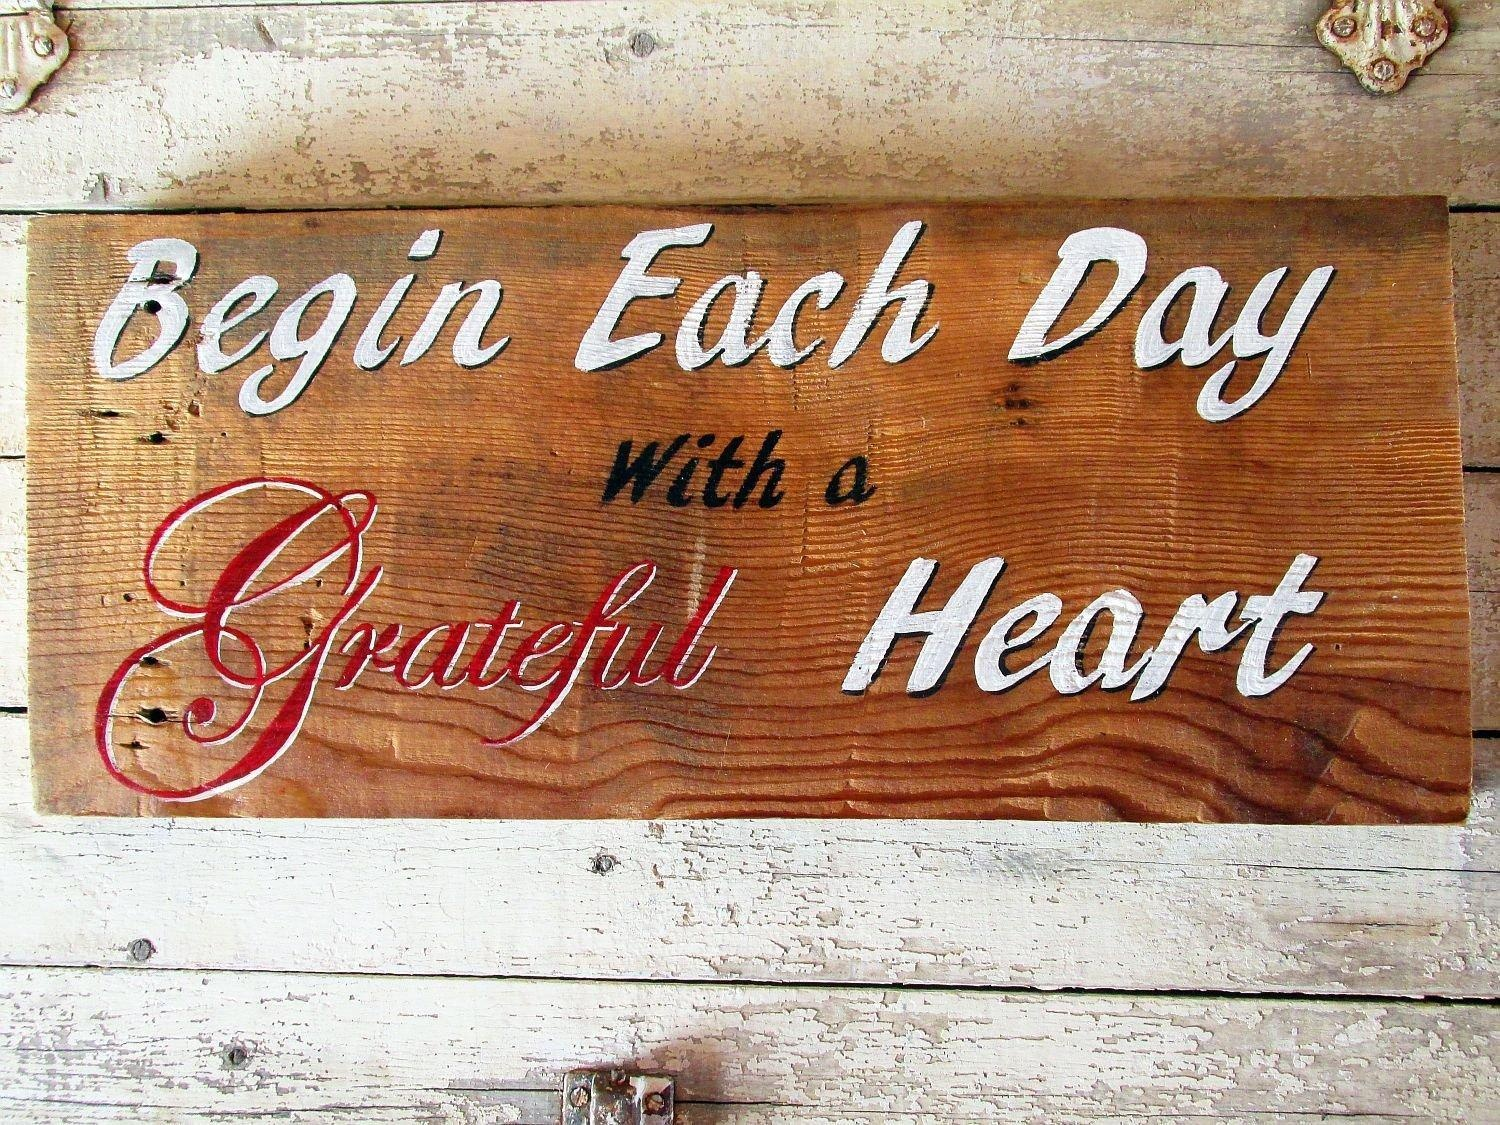 Online store inspirational wood signs sayings quotes wall for Home decor quotes signs